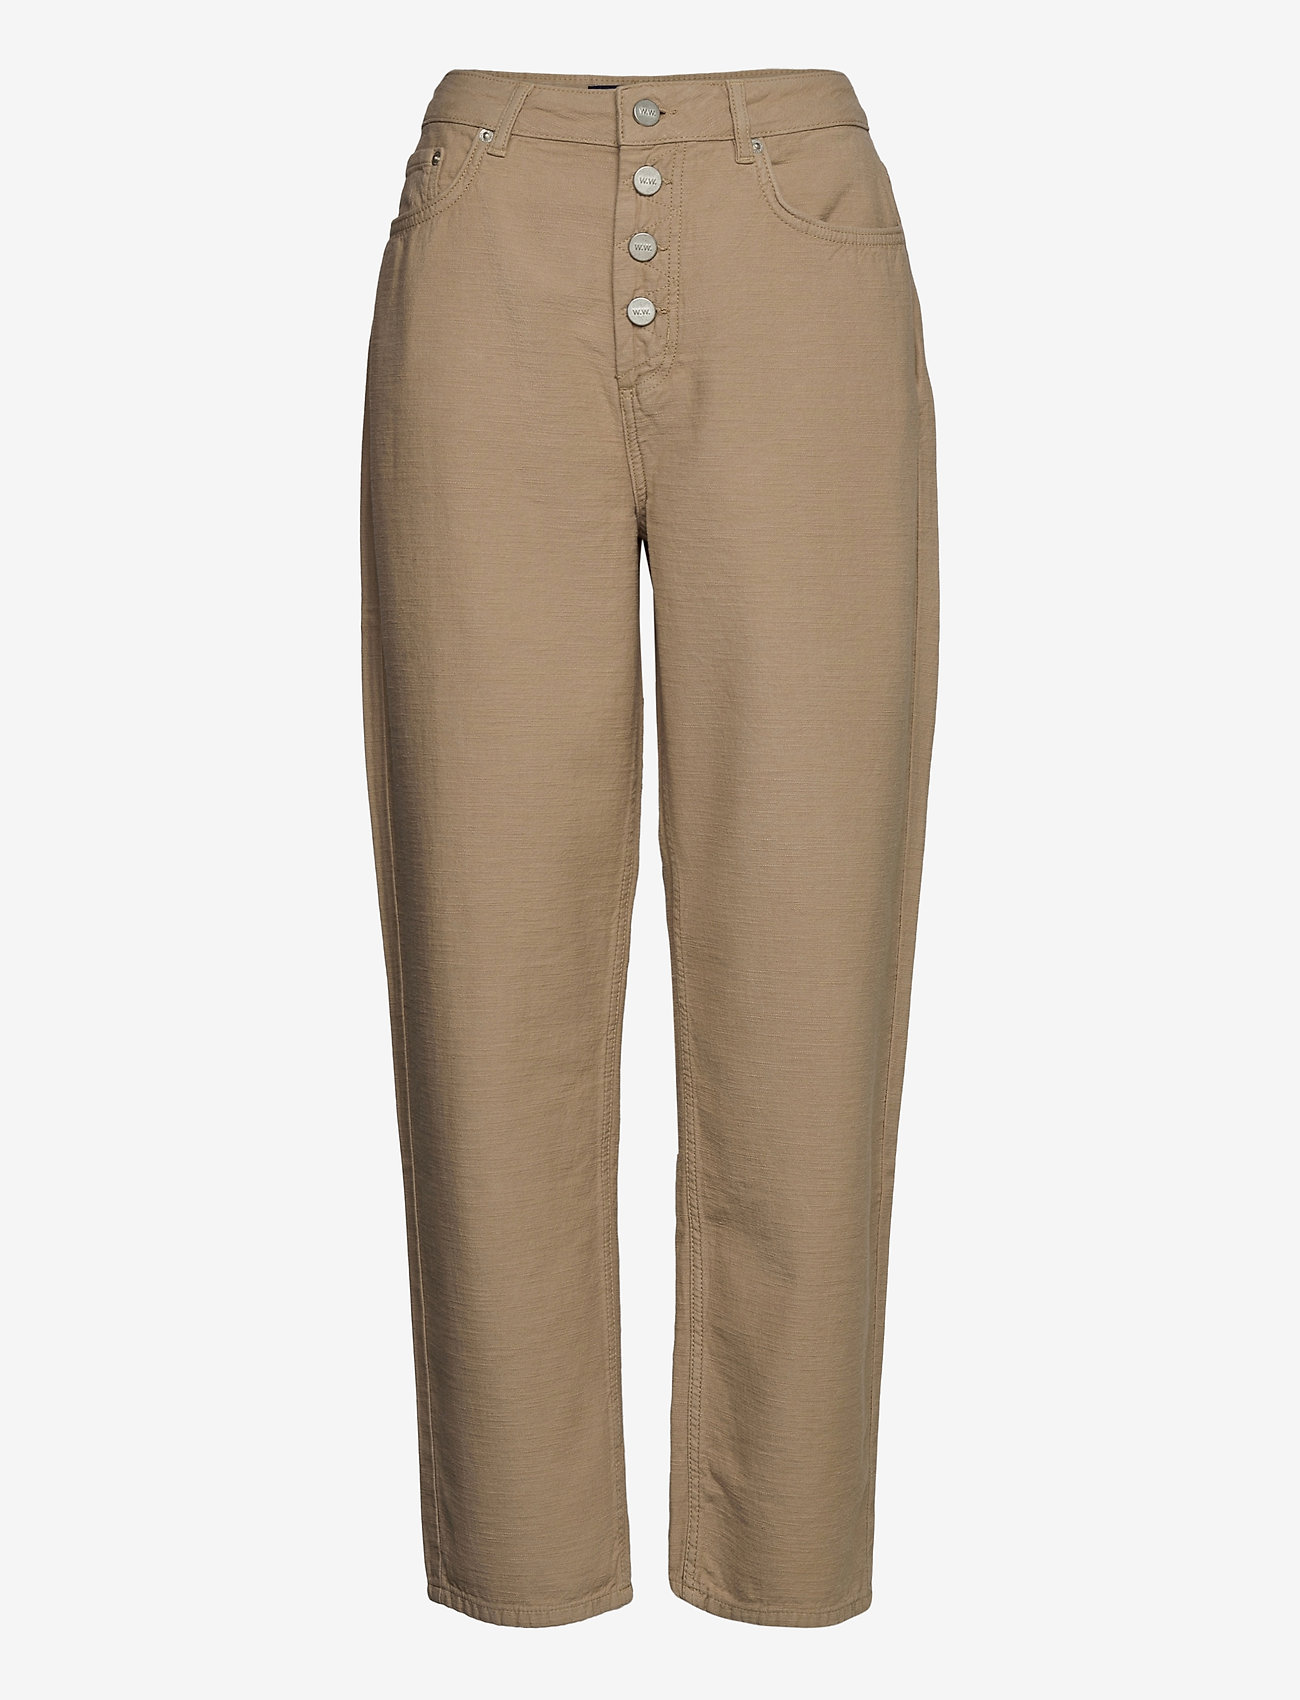 Wood Wood - May jeans - straight jeans - khaki - 0